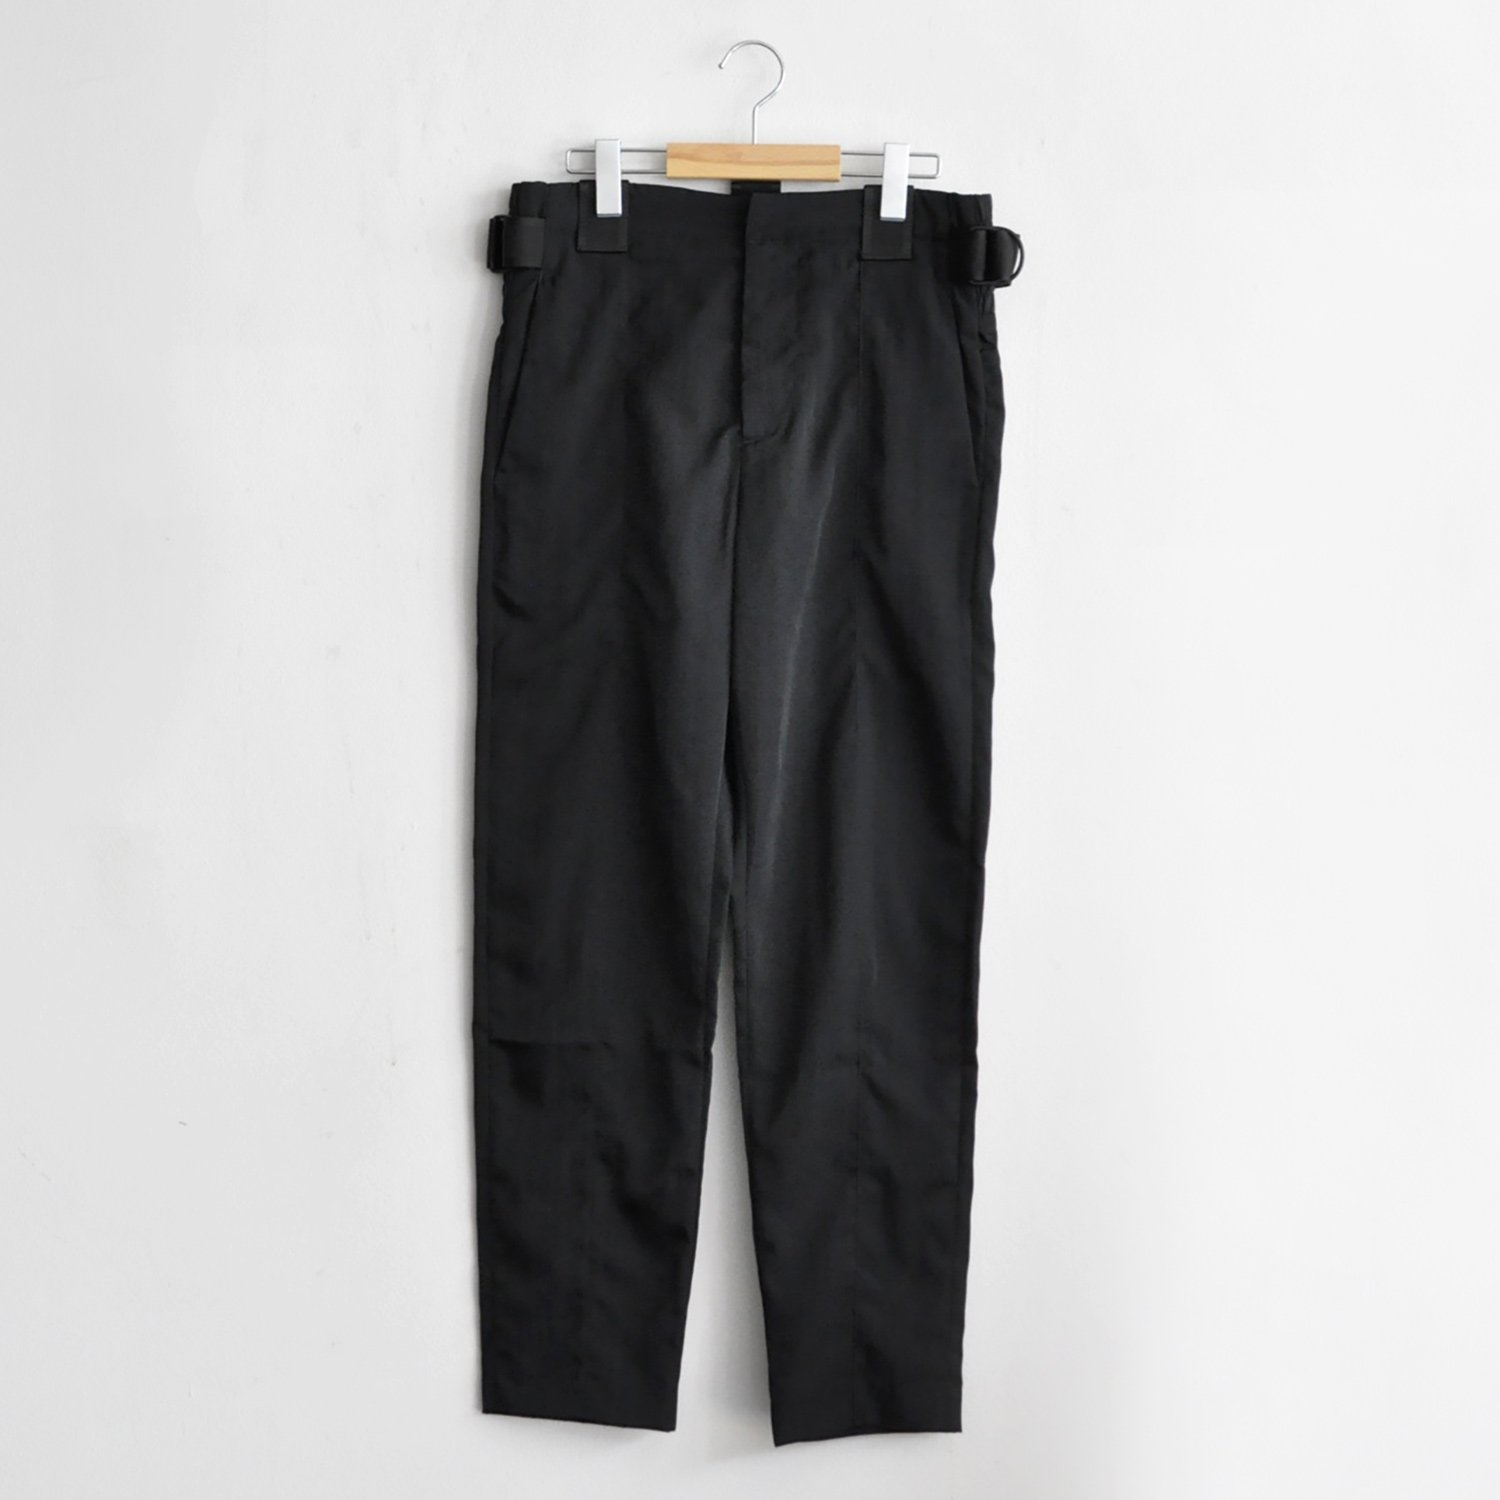 TAPERED TROUSERS NYLON TWILL W BELT DETAIL [CARBON BLACK]